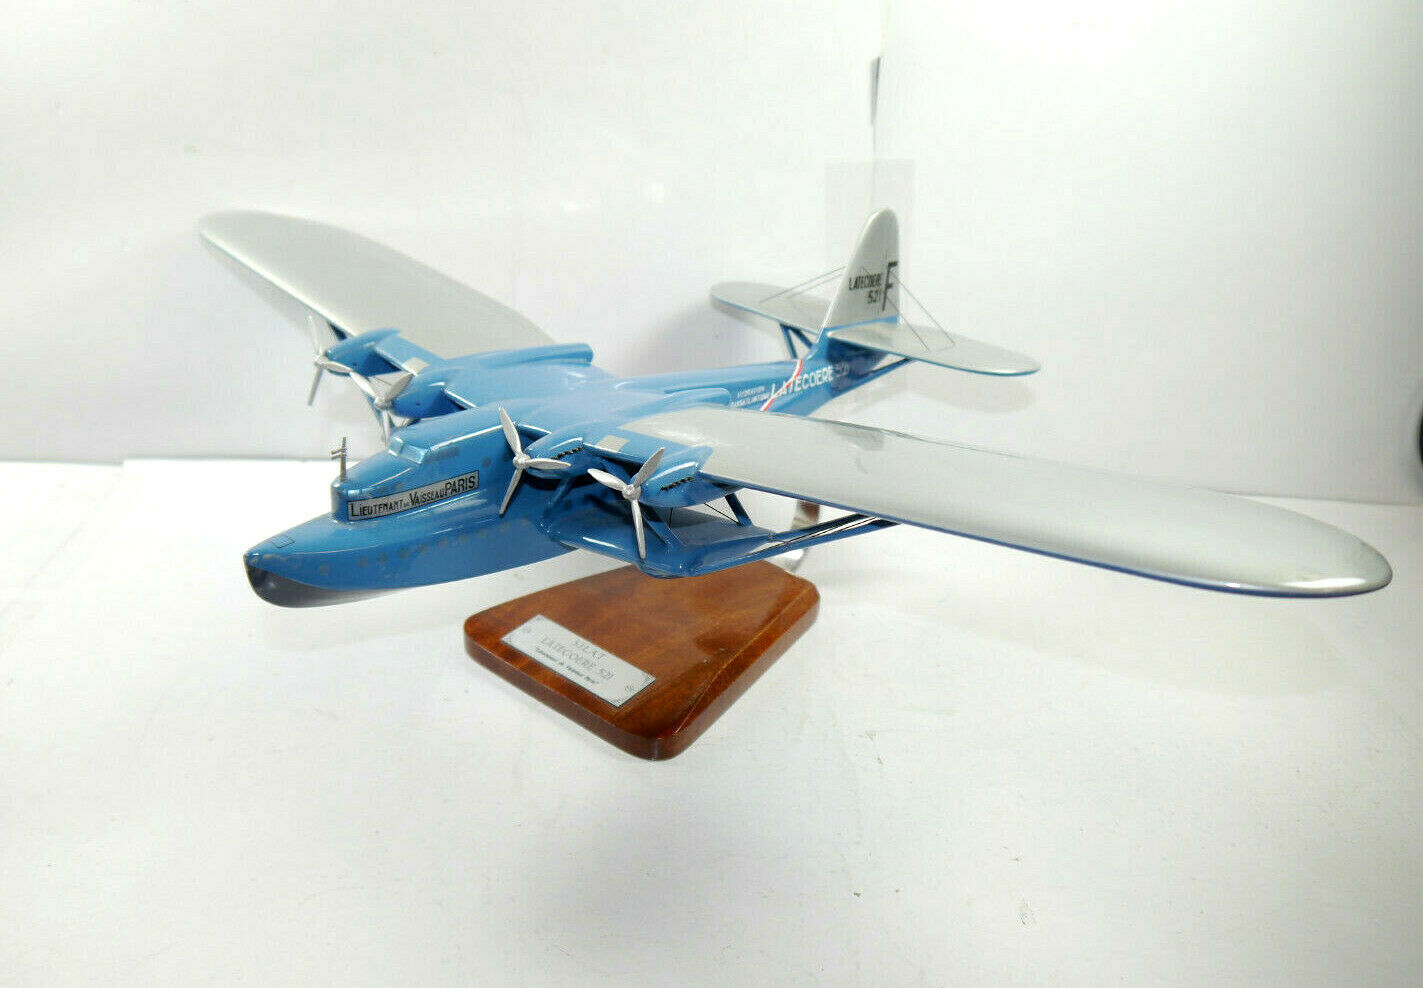 Pilot Station Models s.i.l.a.t. LATECOERE 521 Lieutnant Paris avion modèle f17